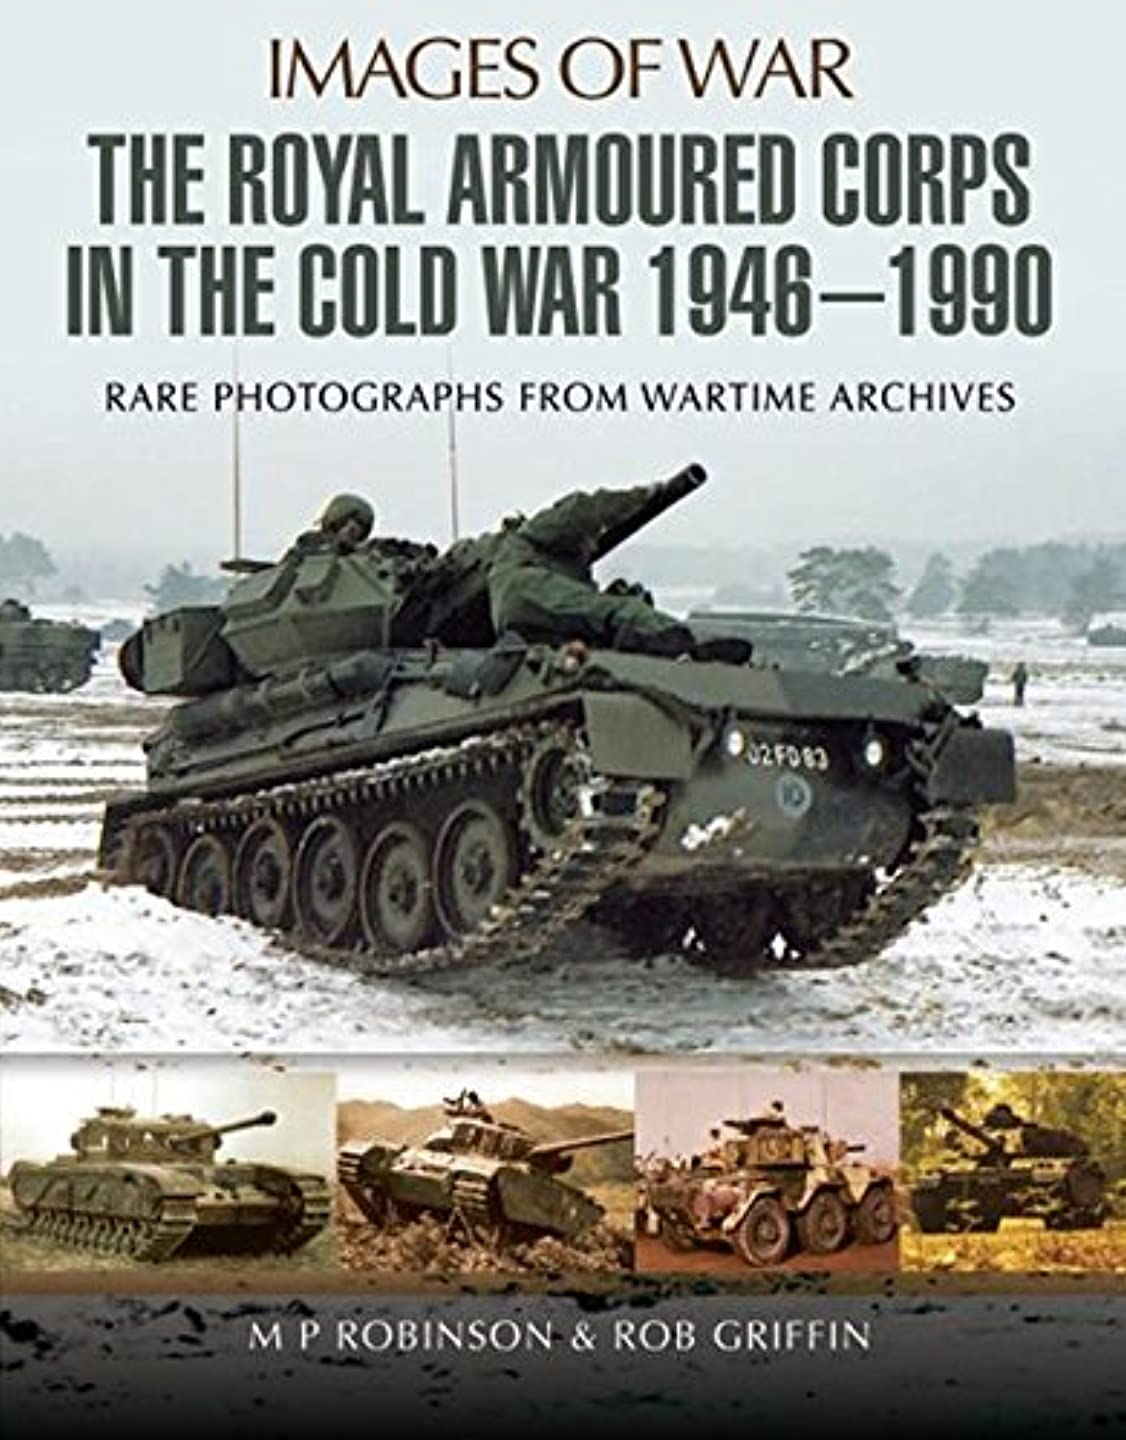 対応するゴールド完全に乾くThe Royal Armoured Corps in the Cold War 1946 - 1990: Rare Photographs from Wartime Archives (Images of War) (English Edition)